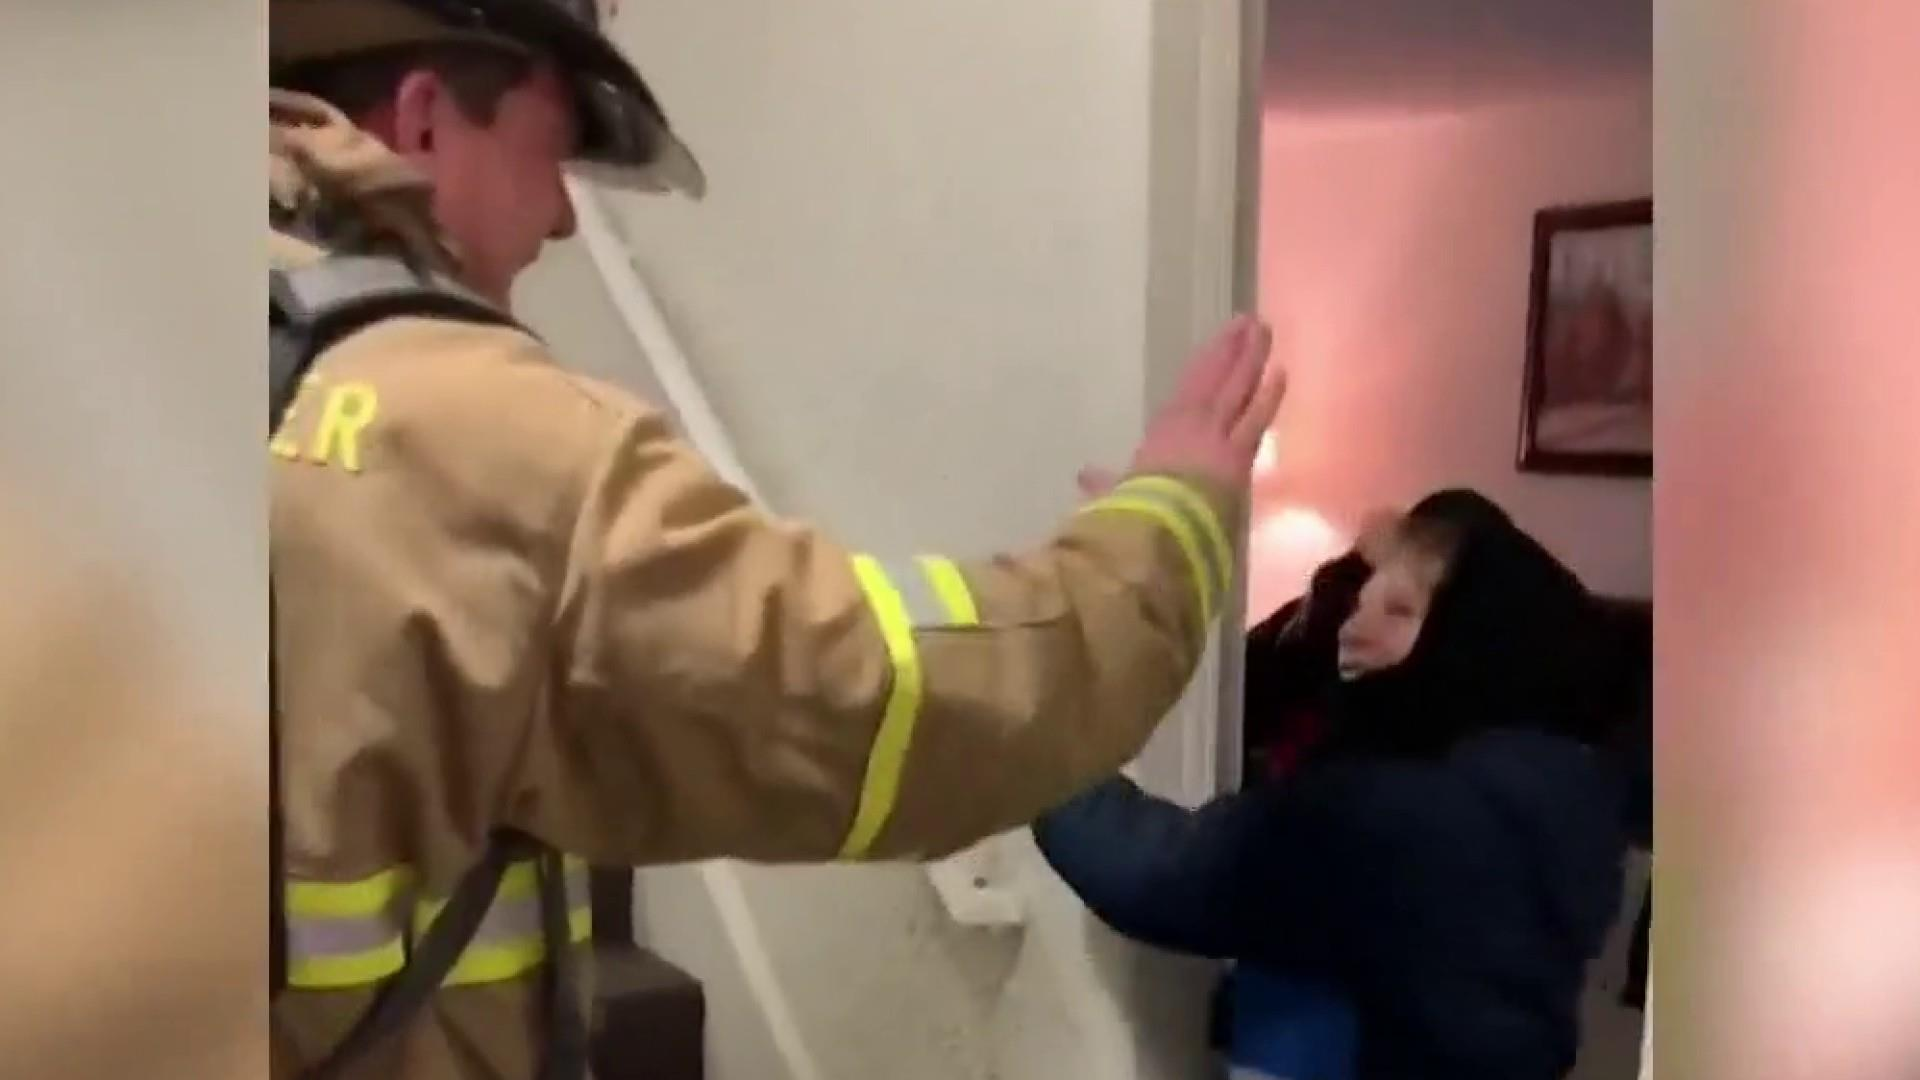 #GoodNewsRUHLES: Fireman speaks to nonverbal boy with sign language